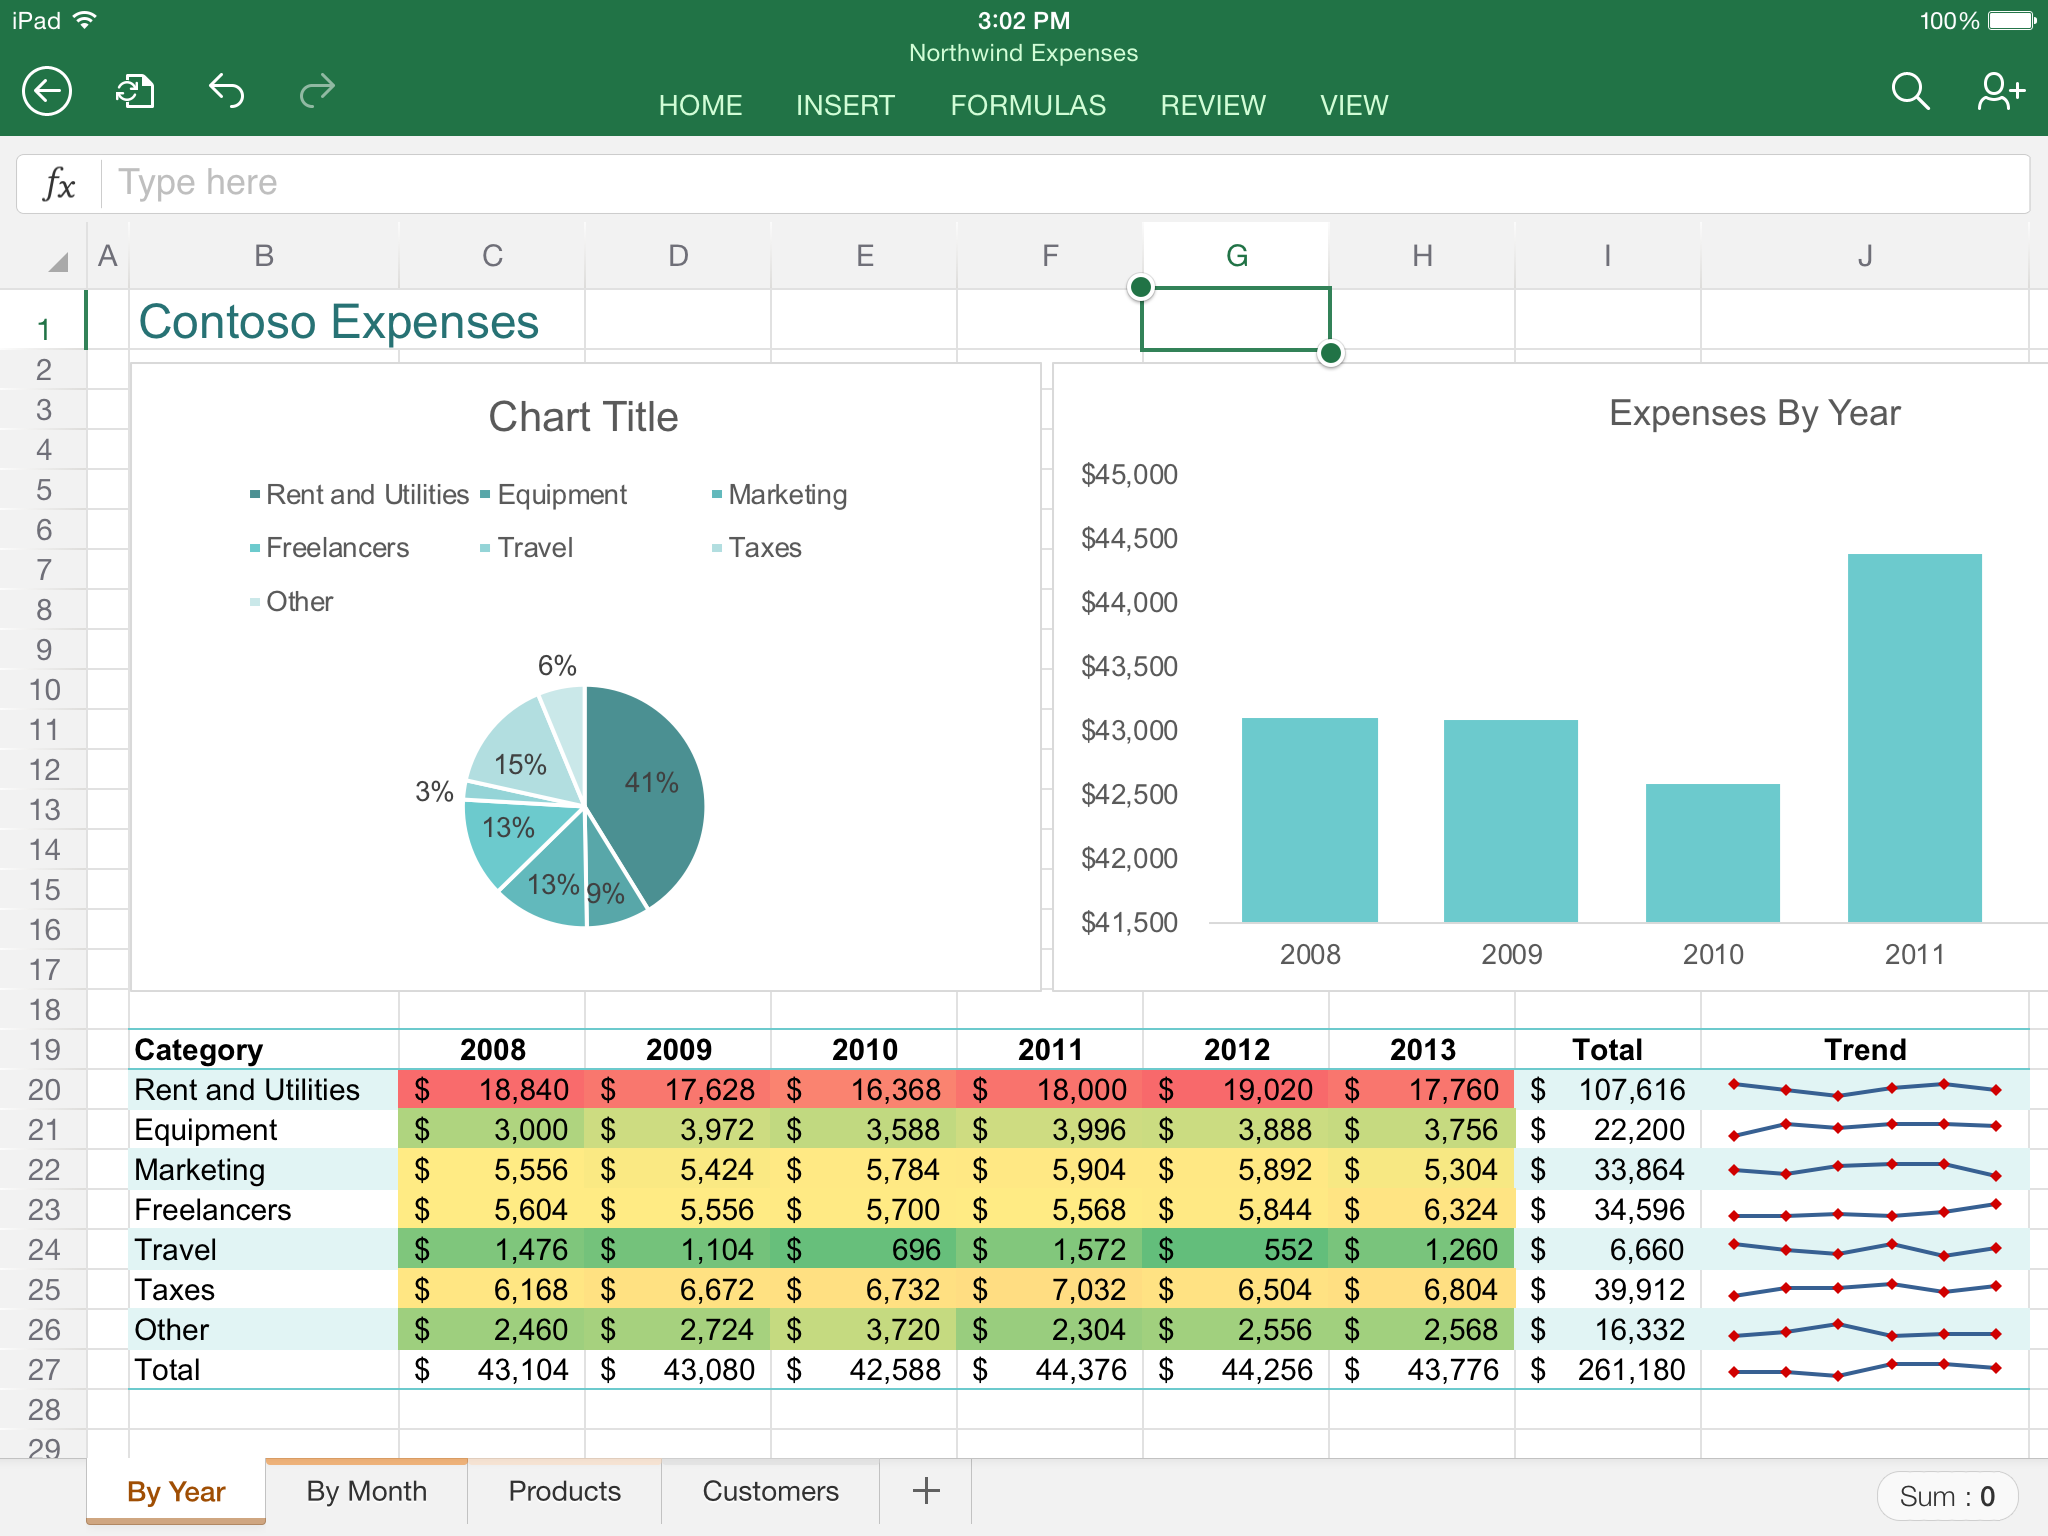 Ediblewildsus  Wonderful App Highlight Excel  Mobile Digital Now With Handsome Excel In Action With Lovely Convert Number To Time In Excel Also Solver Add In Excel  Download In Addition Sign For Less Than Or Equal To In Excel And Remove Watermark On Excel As Well As Excel Interop Additionally Unlock Excel  Password Protected File From Youstonybrookedu With Ediblewildsus  Handsome App Highlight Excel  Mobile Digital Now With Lovely Excel In Action And Wonderful Convert Number To Time In Excel Also Solver Add In Excel  Download In Addition Sign For Less Than Or Equal To In Excel From Youstonybrookedu